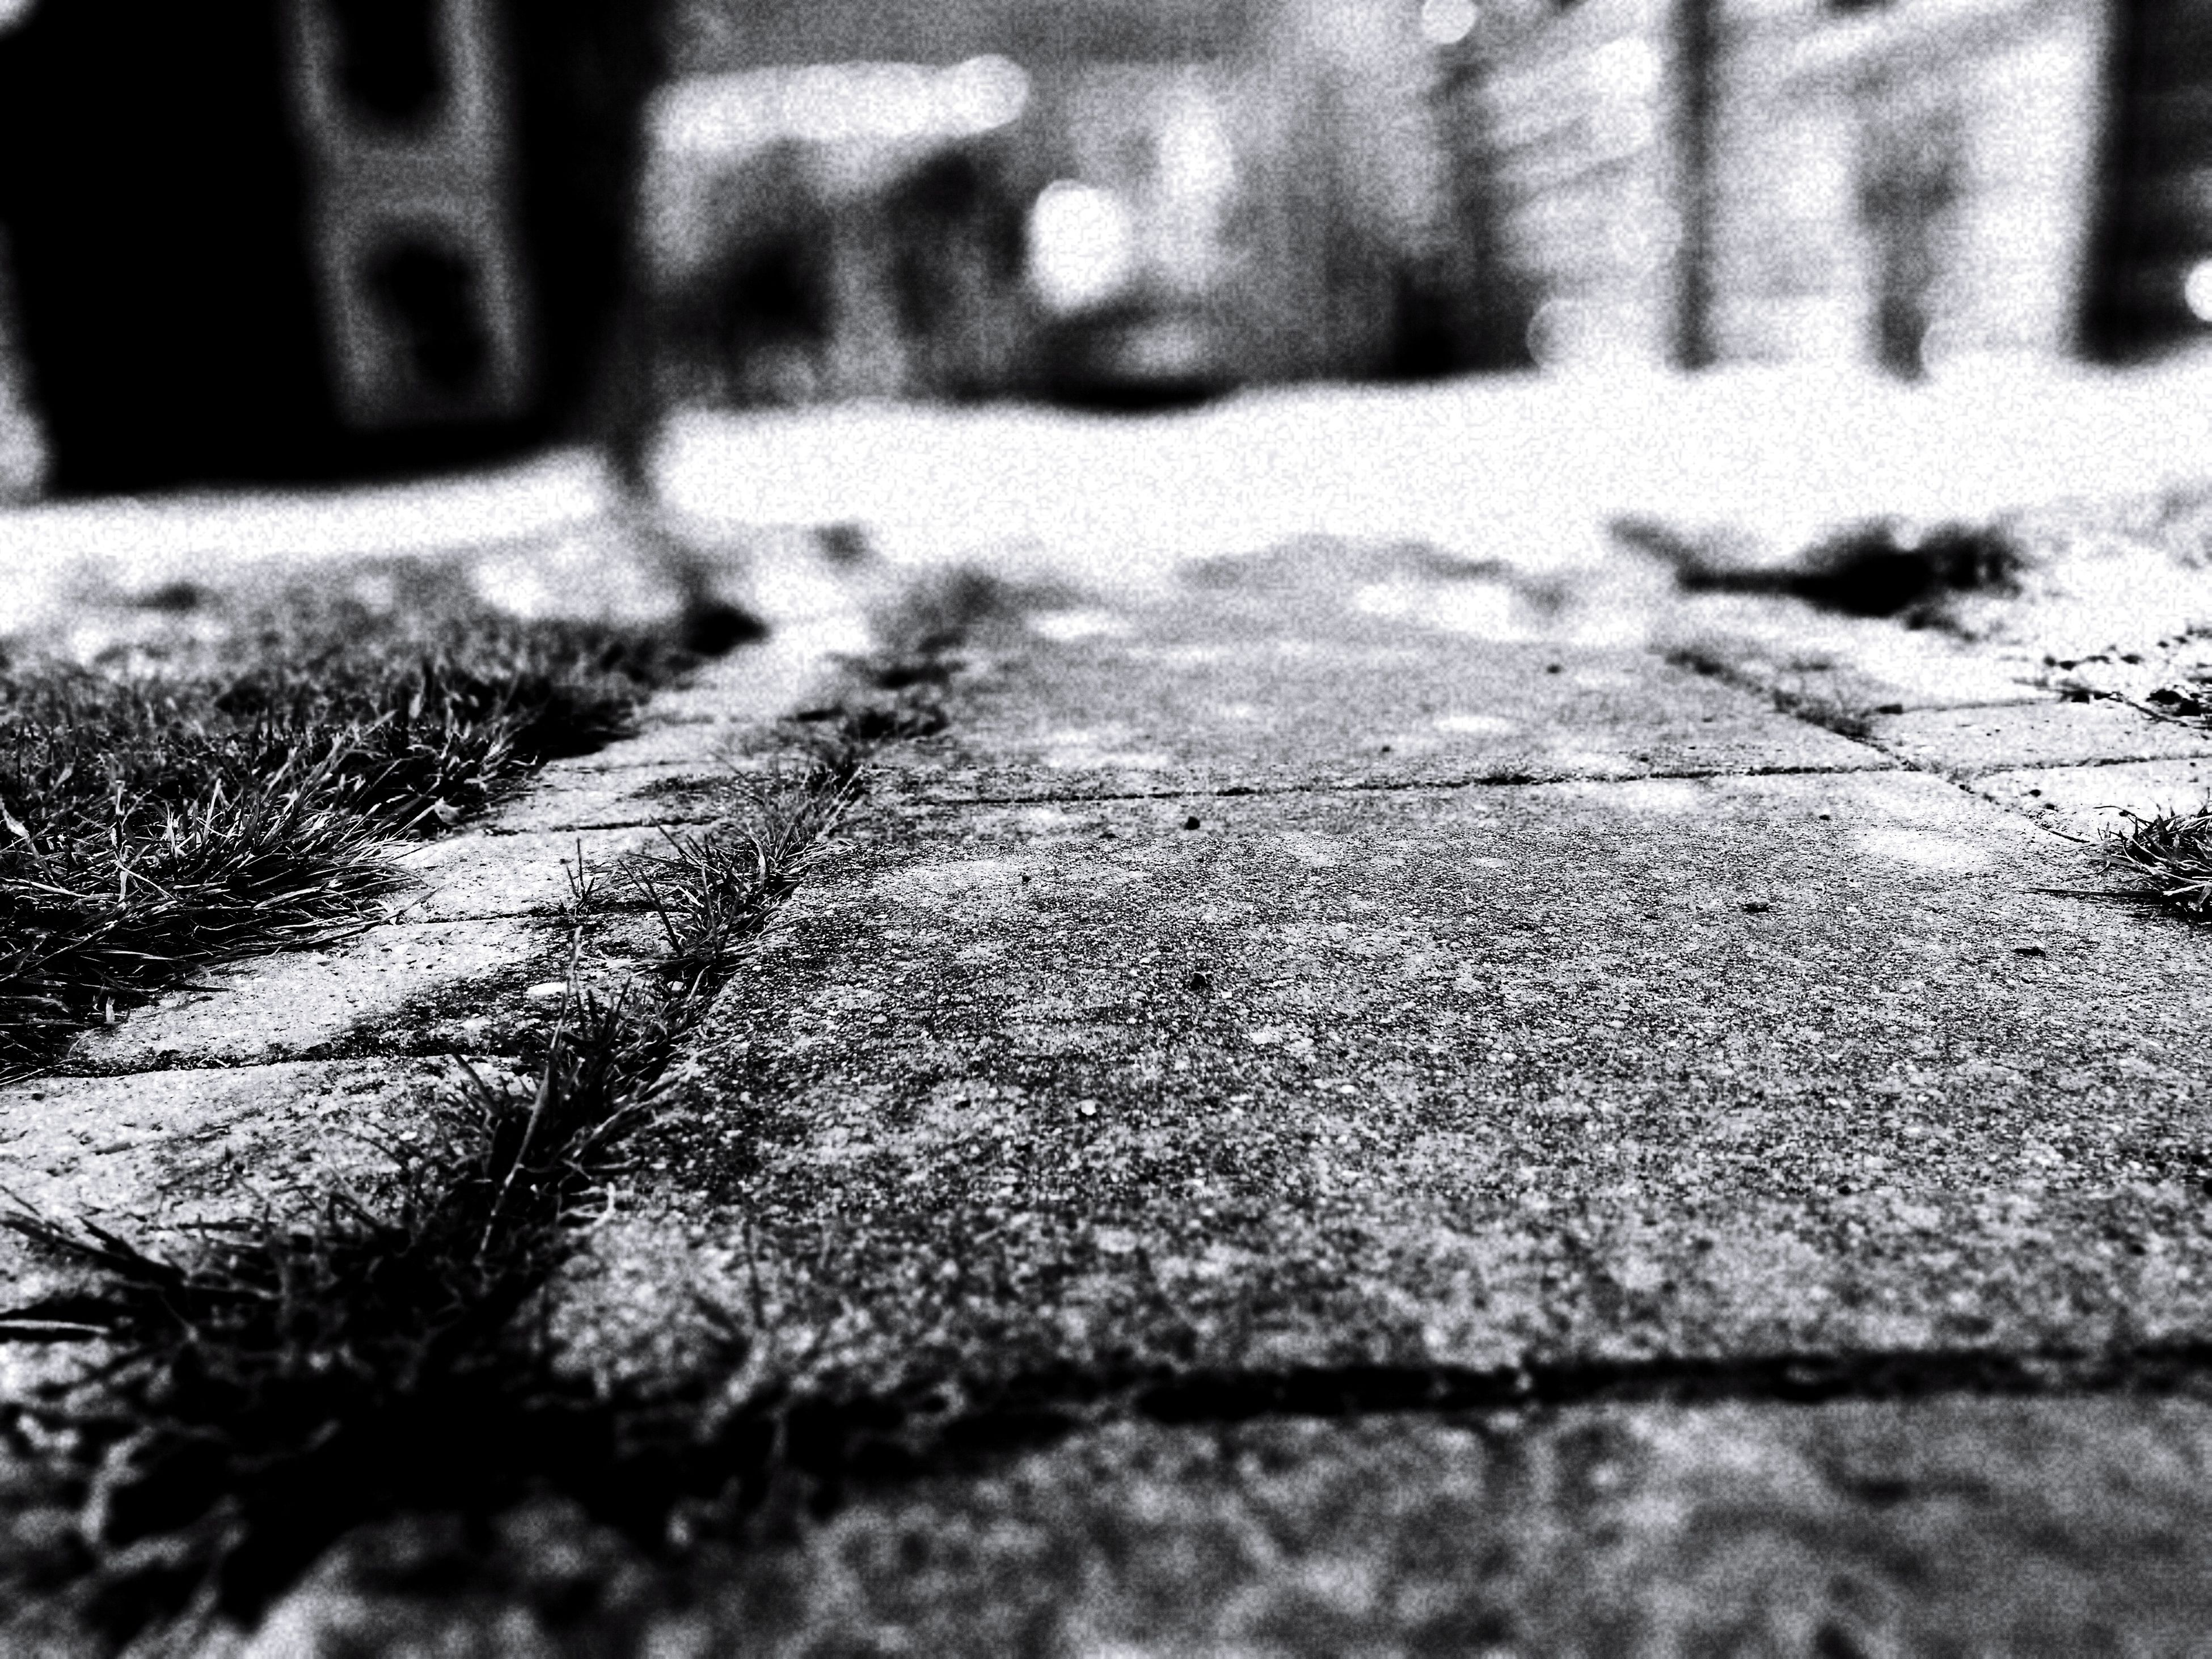 day, selective focus, outdoors, no people, textured, close-up, shadow, nature, built structure, architecture, building exterior